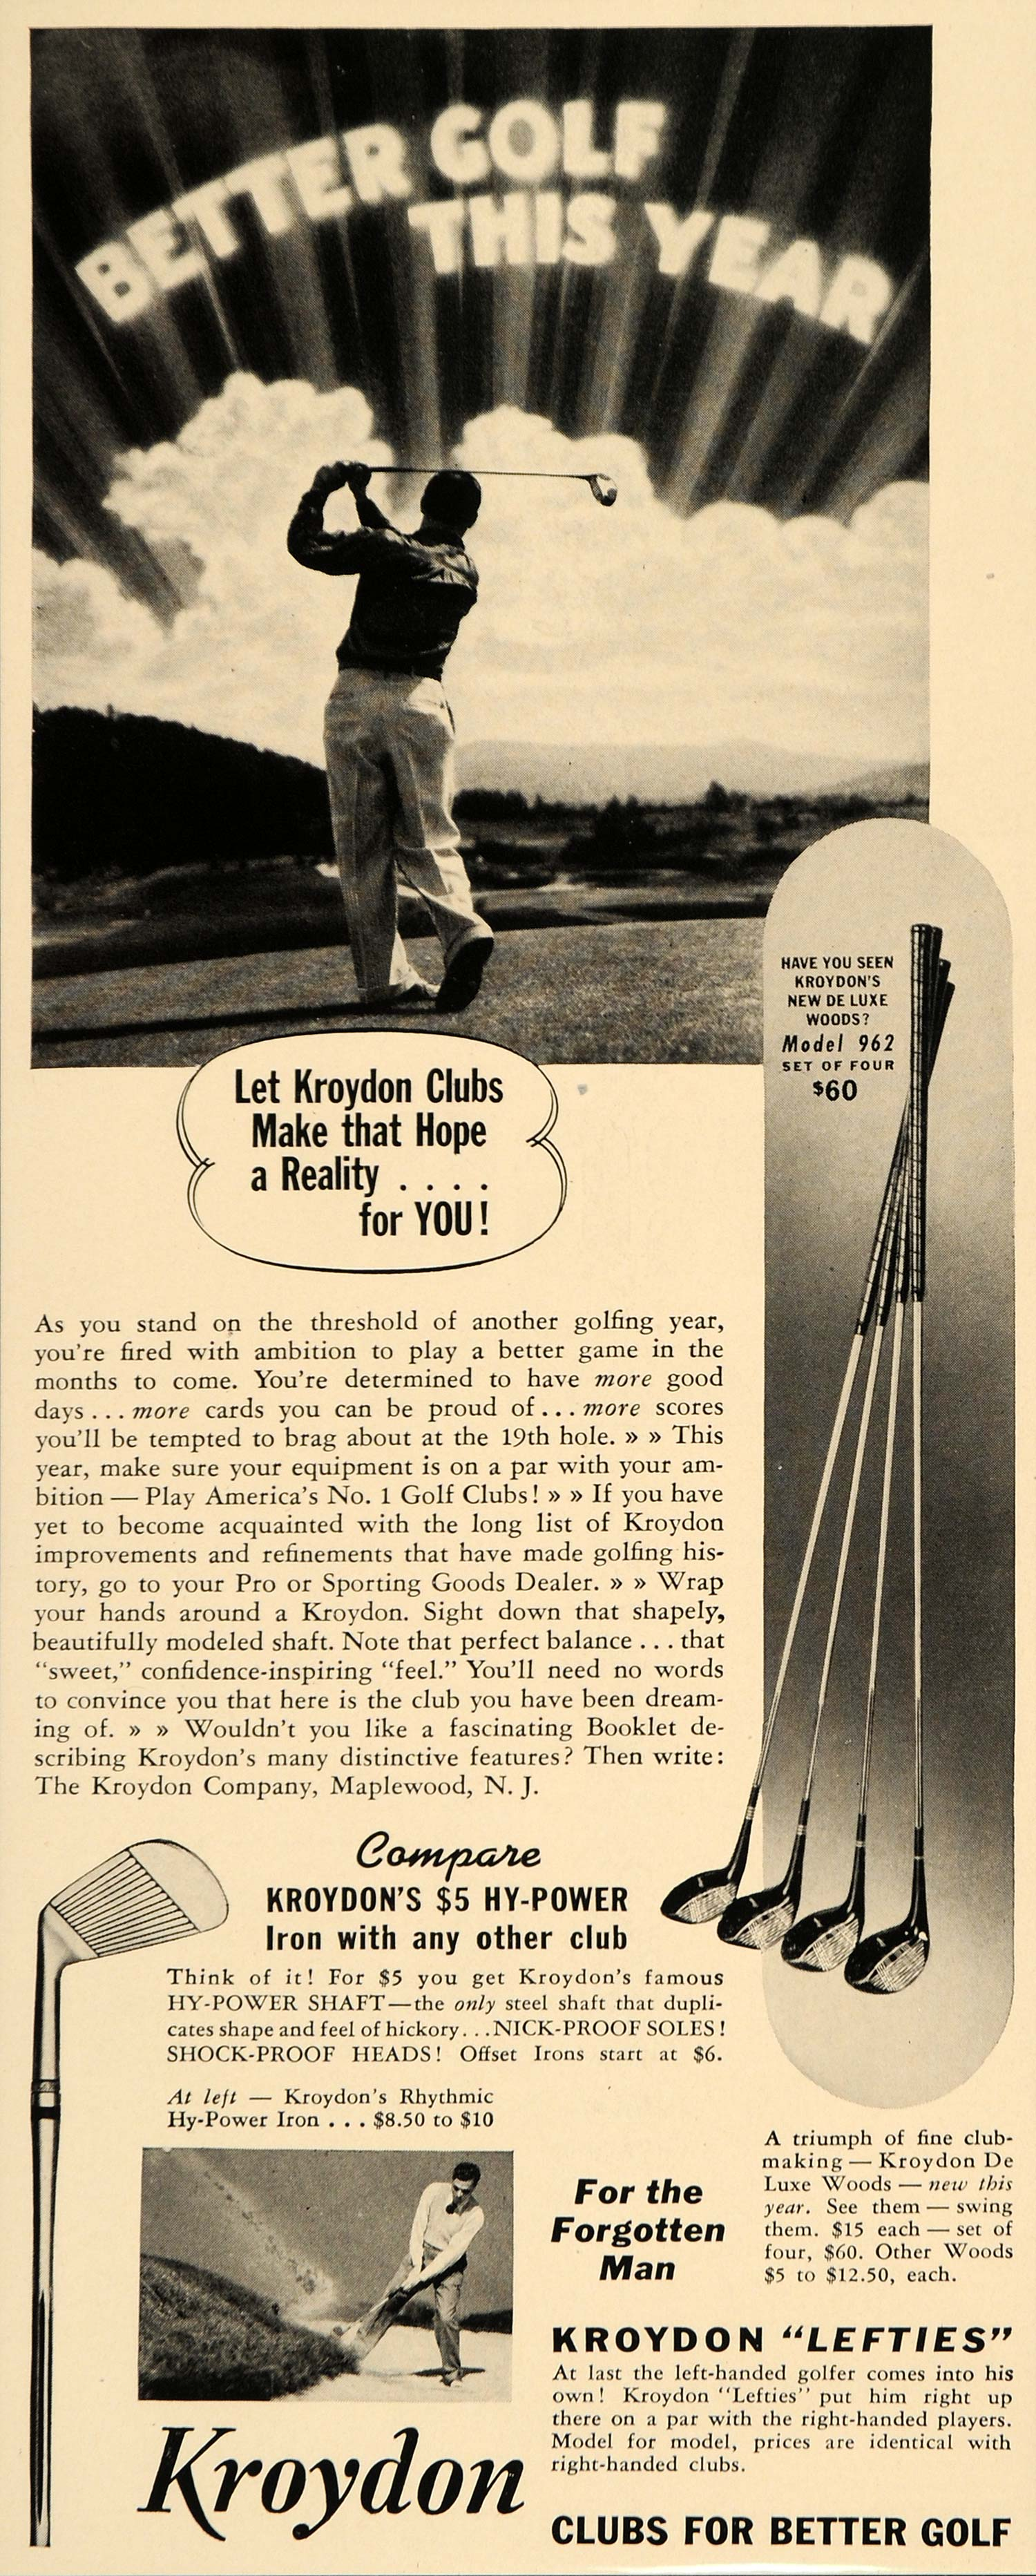 1940 Ad Kroydon Lefties Golf Clubs Hy-Power Iron Swing - ORIGINAL F4B